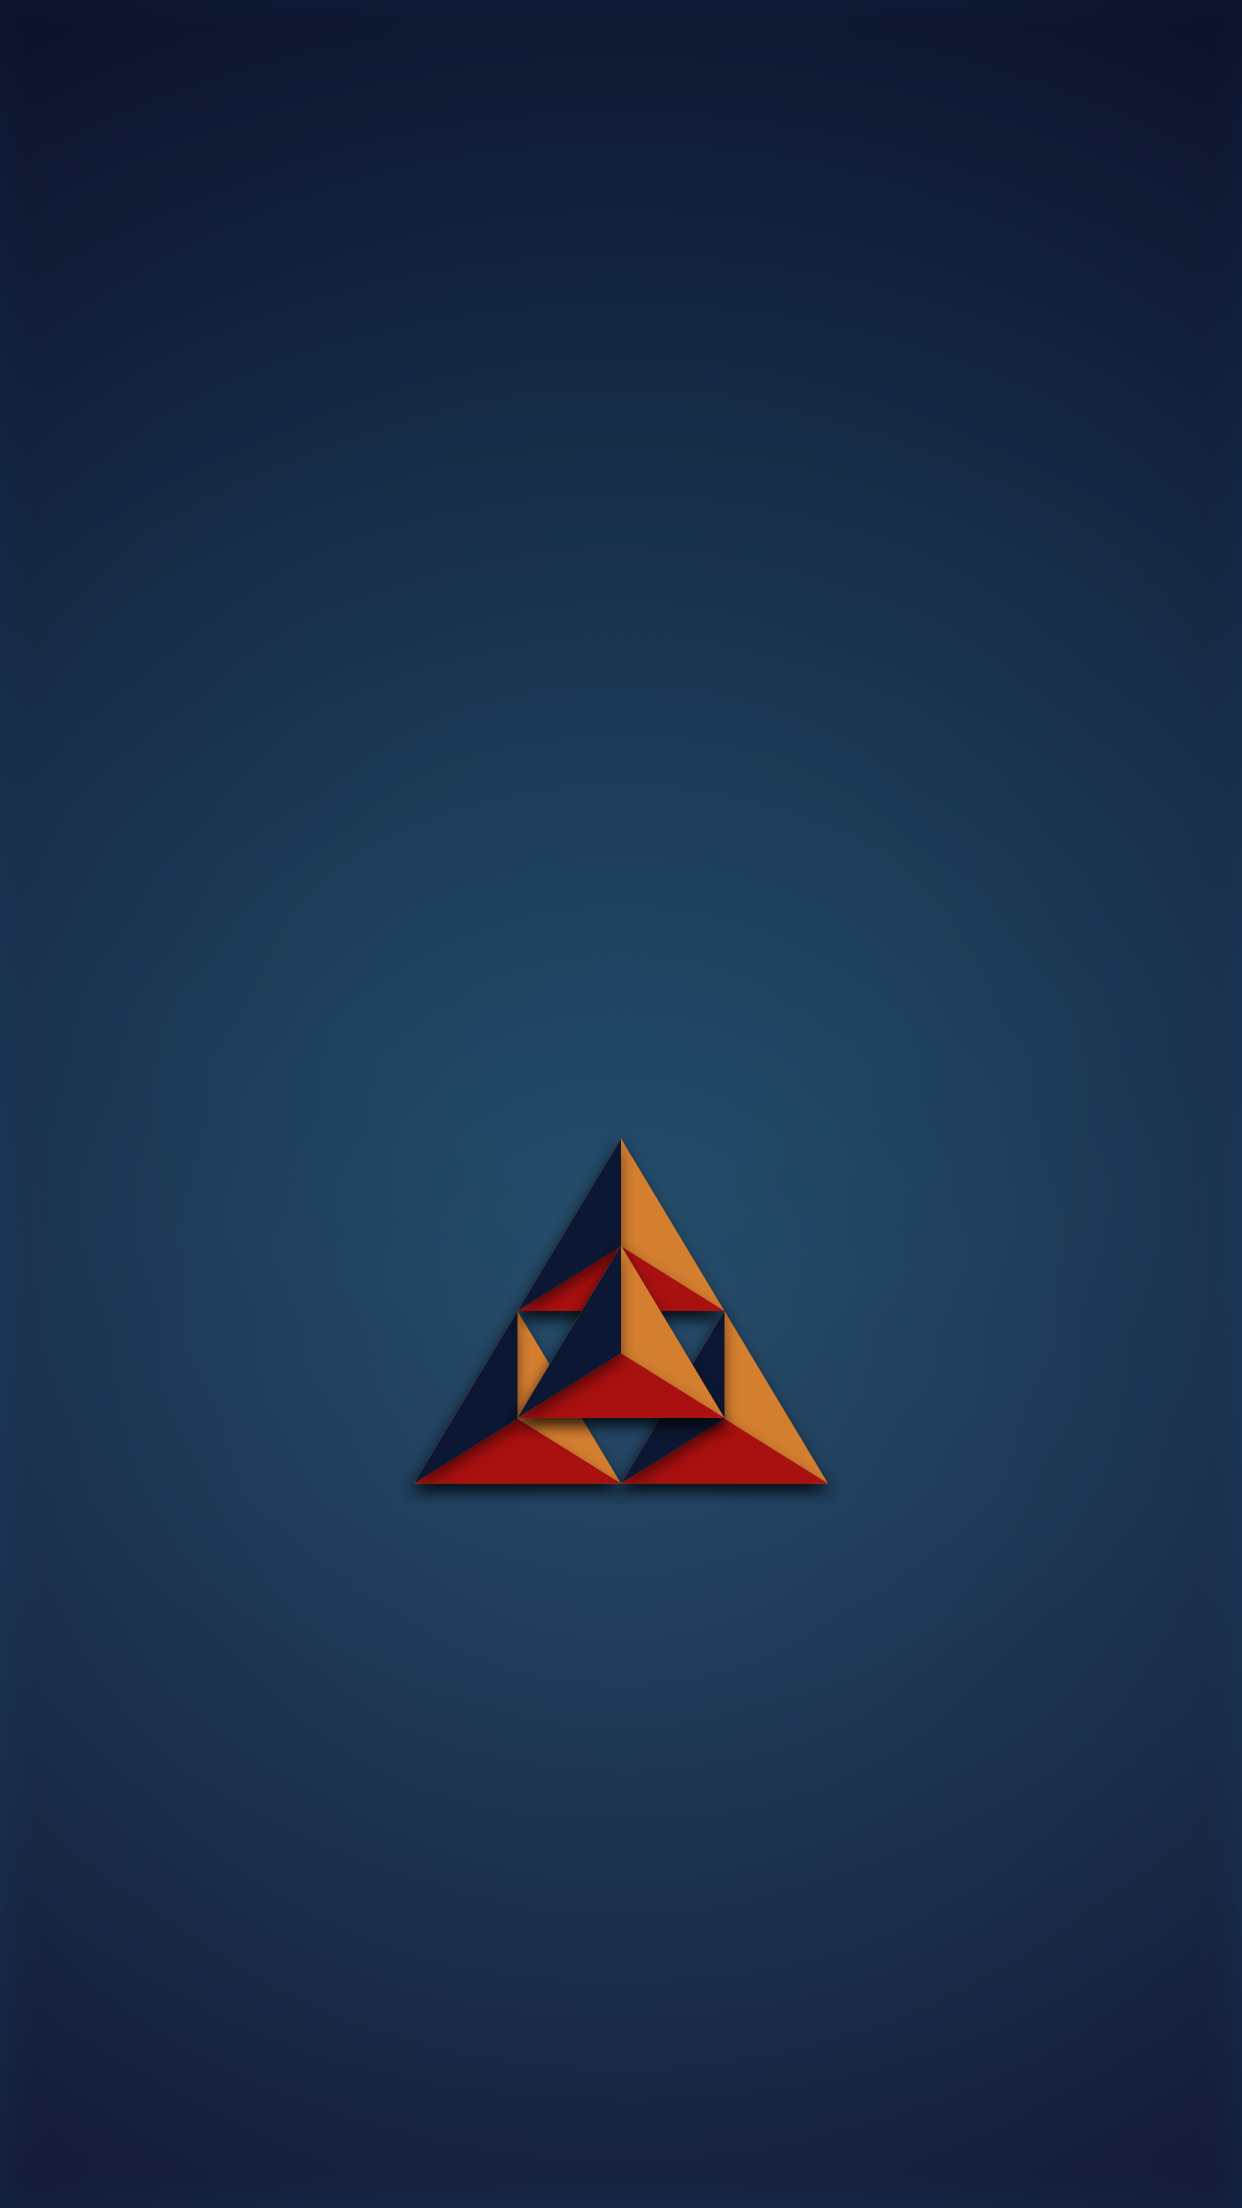 Angular Wallpaper - Lock Screen